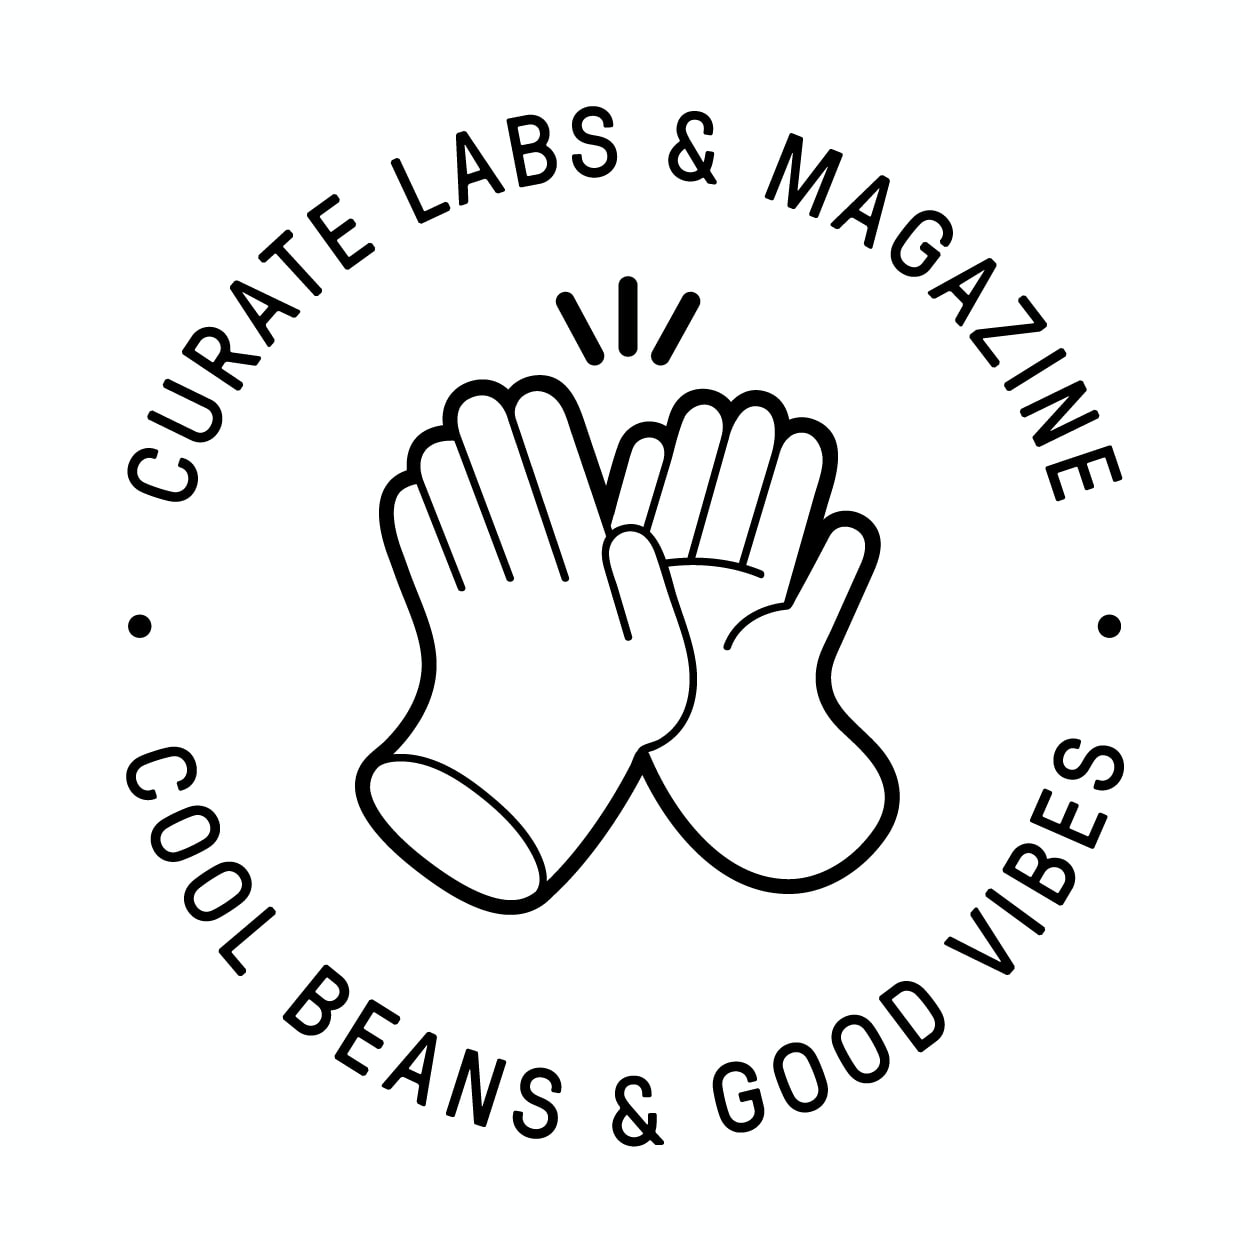 Go to Curate Labs & Magazine's profile